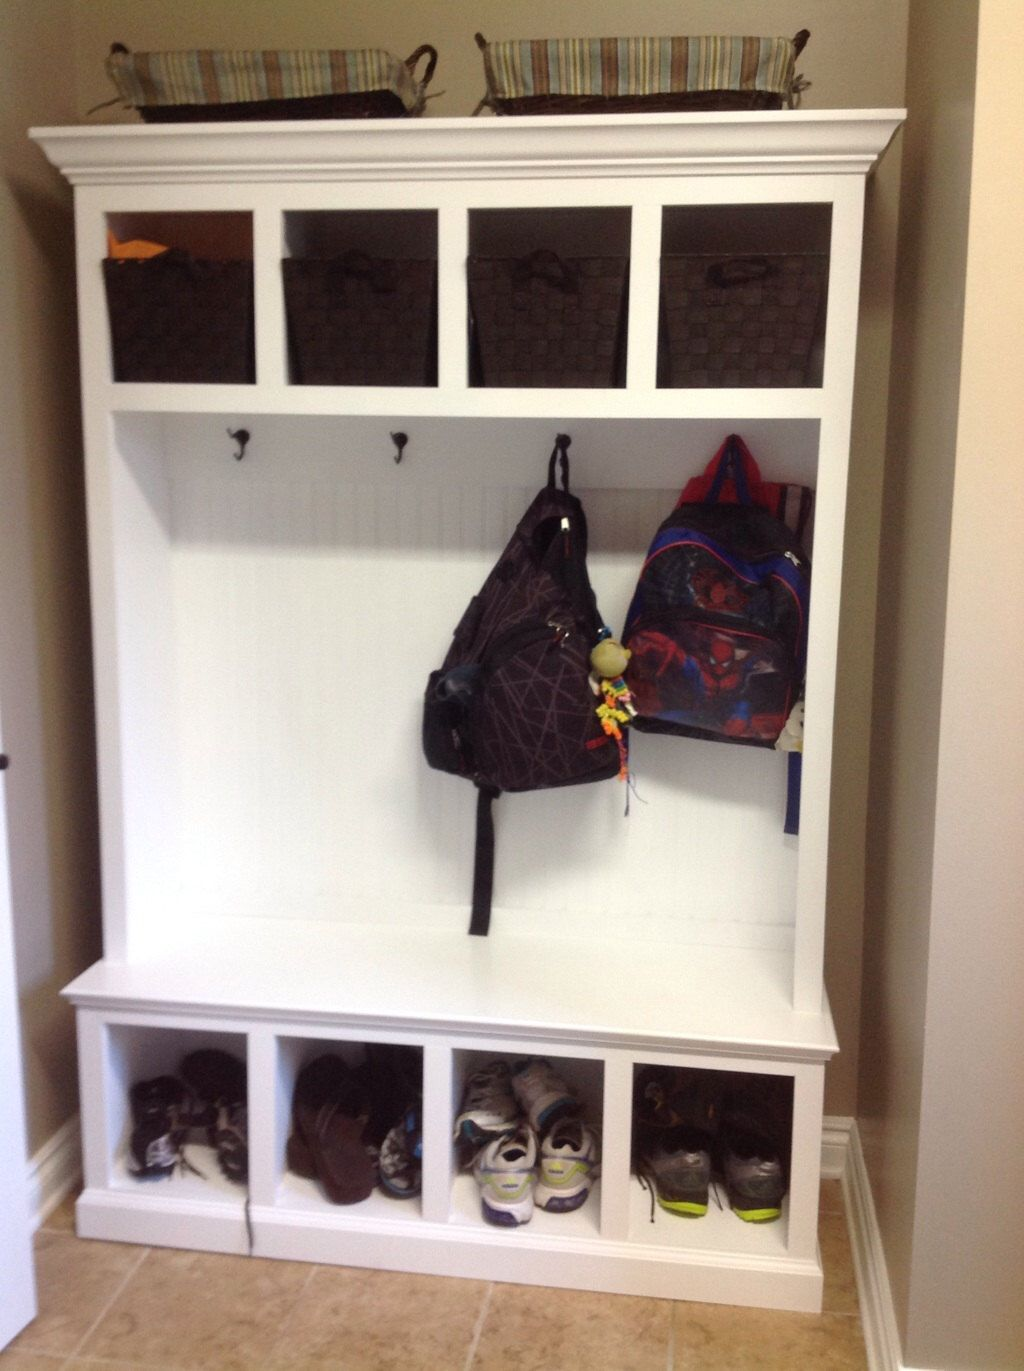 entryway storage locker furniture. Wide Beadboard Hall Tree With 4 Upper And Lower Storage Cubbies - Entryway Furniture Locker Coat Rack Mud Room -Bead Board E